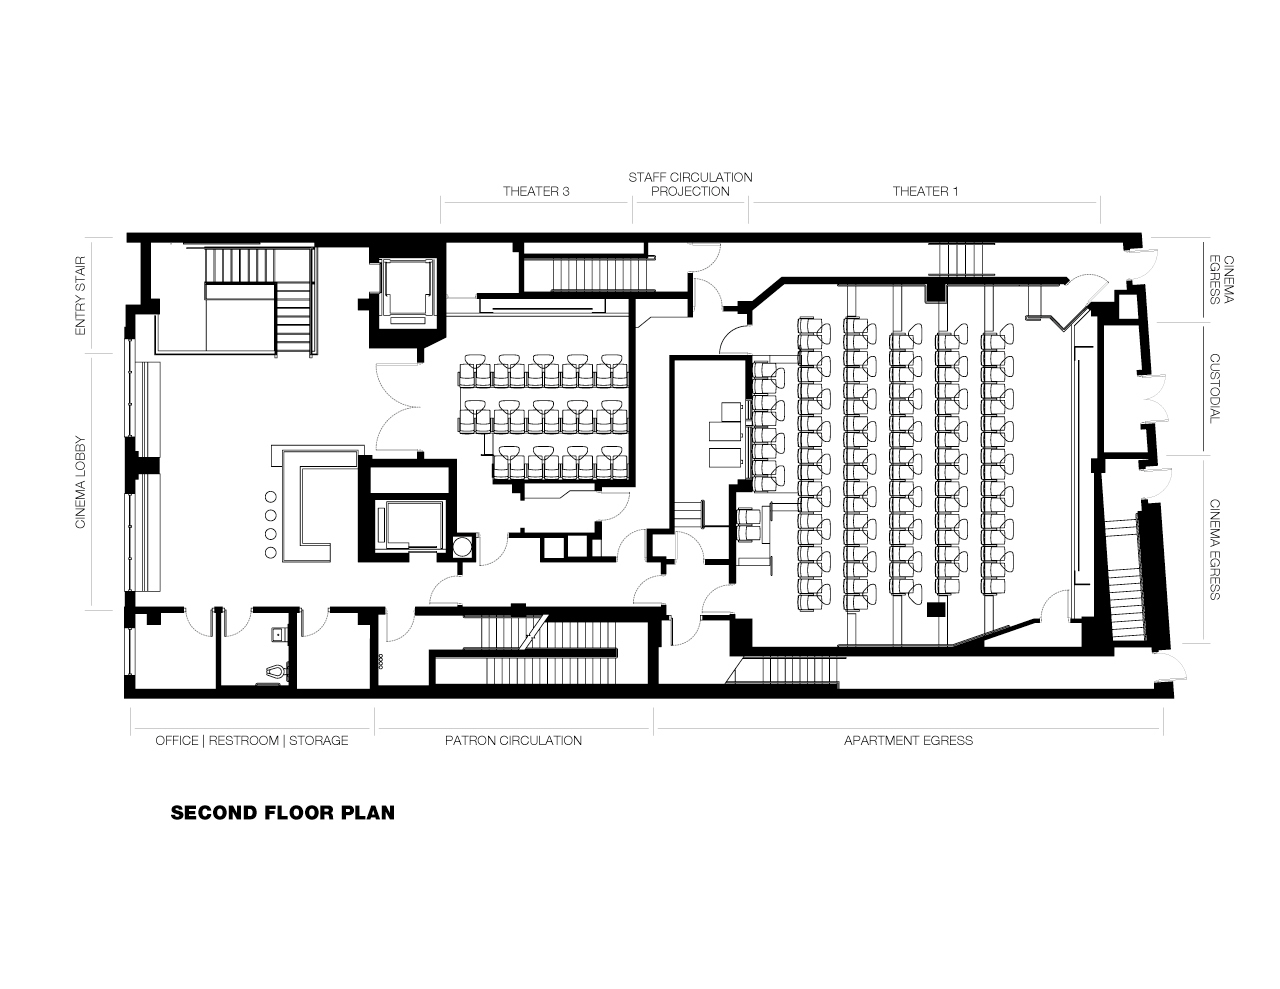 Office Reflected Ceiling Plan Recherche Google Reflected Ceiling furthermore Writing Center additionally Nitehawk Plans Clean 3dm 3 besides Average Living Room Size Meters Uk additionally Photography Name Ideas Creative. on planning design studio